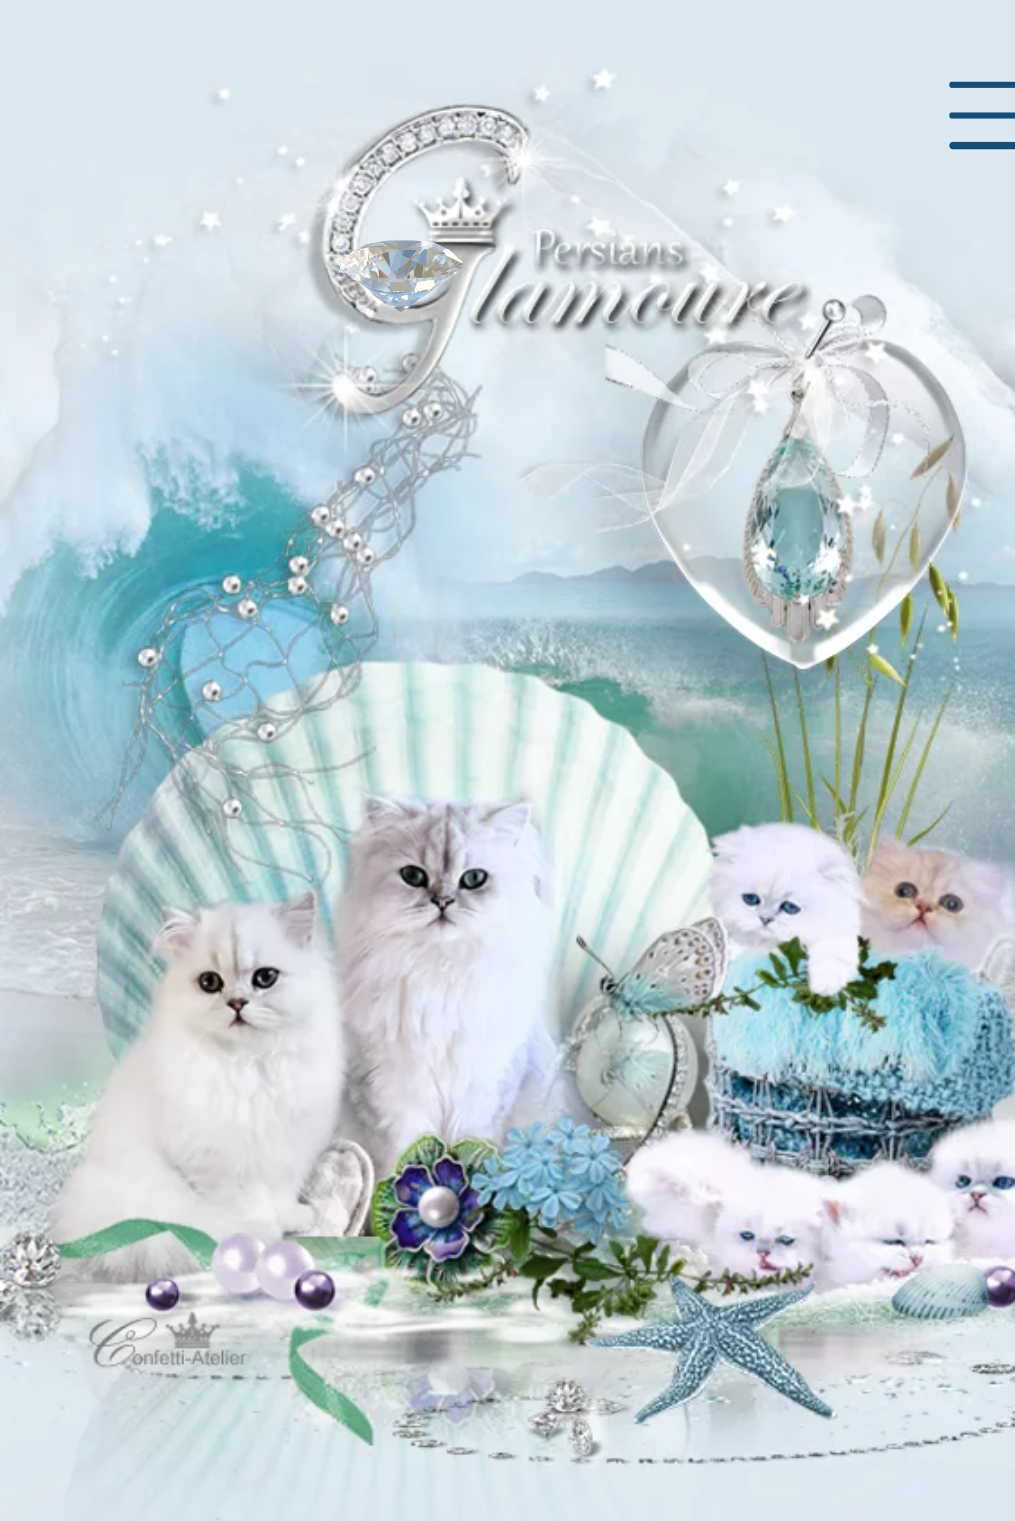 Glamoure Persians